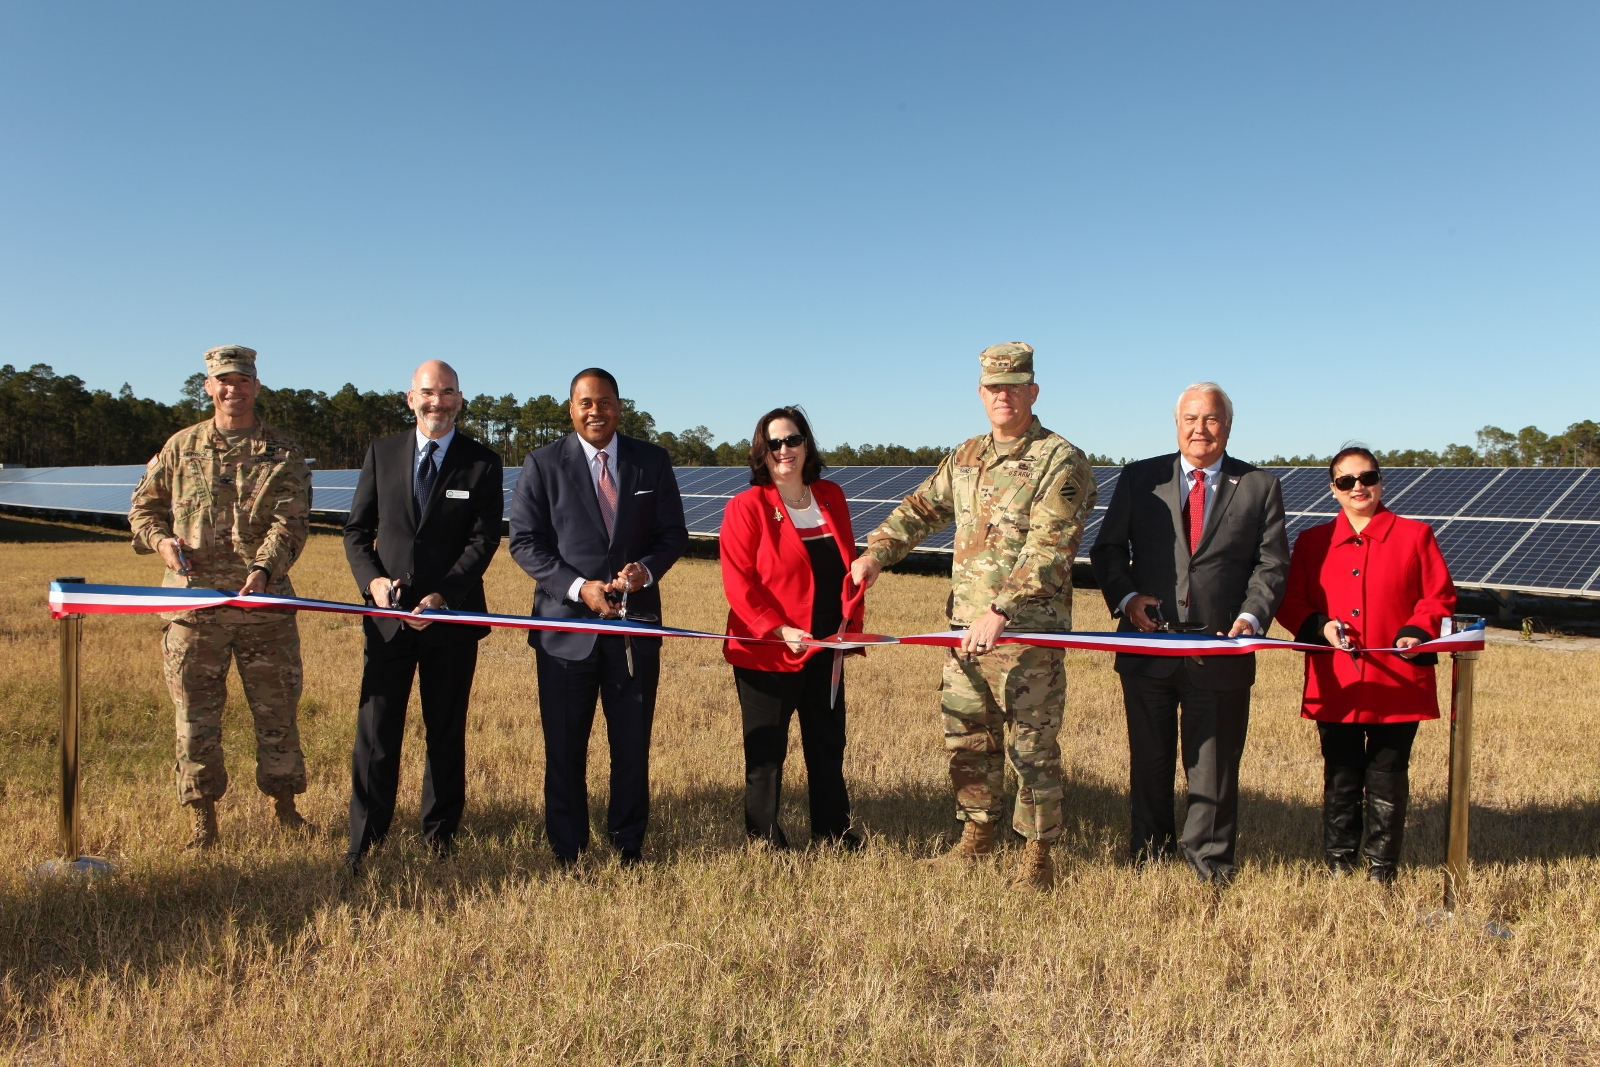 Leaders from Georgia Power and the US Army joined elected officials, community leaders and other dignitaries at Fort Stewart near Hinesville to dedicate the new on-base solar facility. Source: Georgia Power